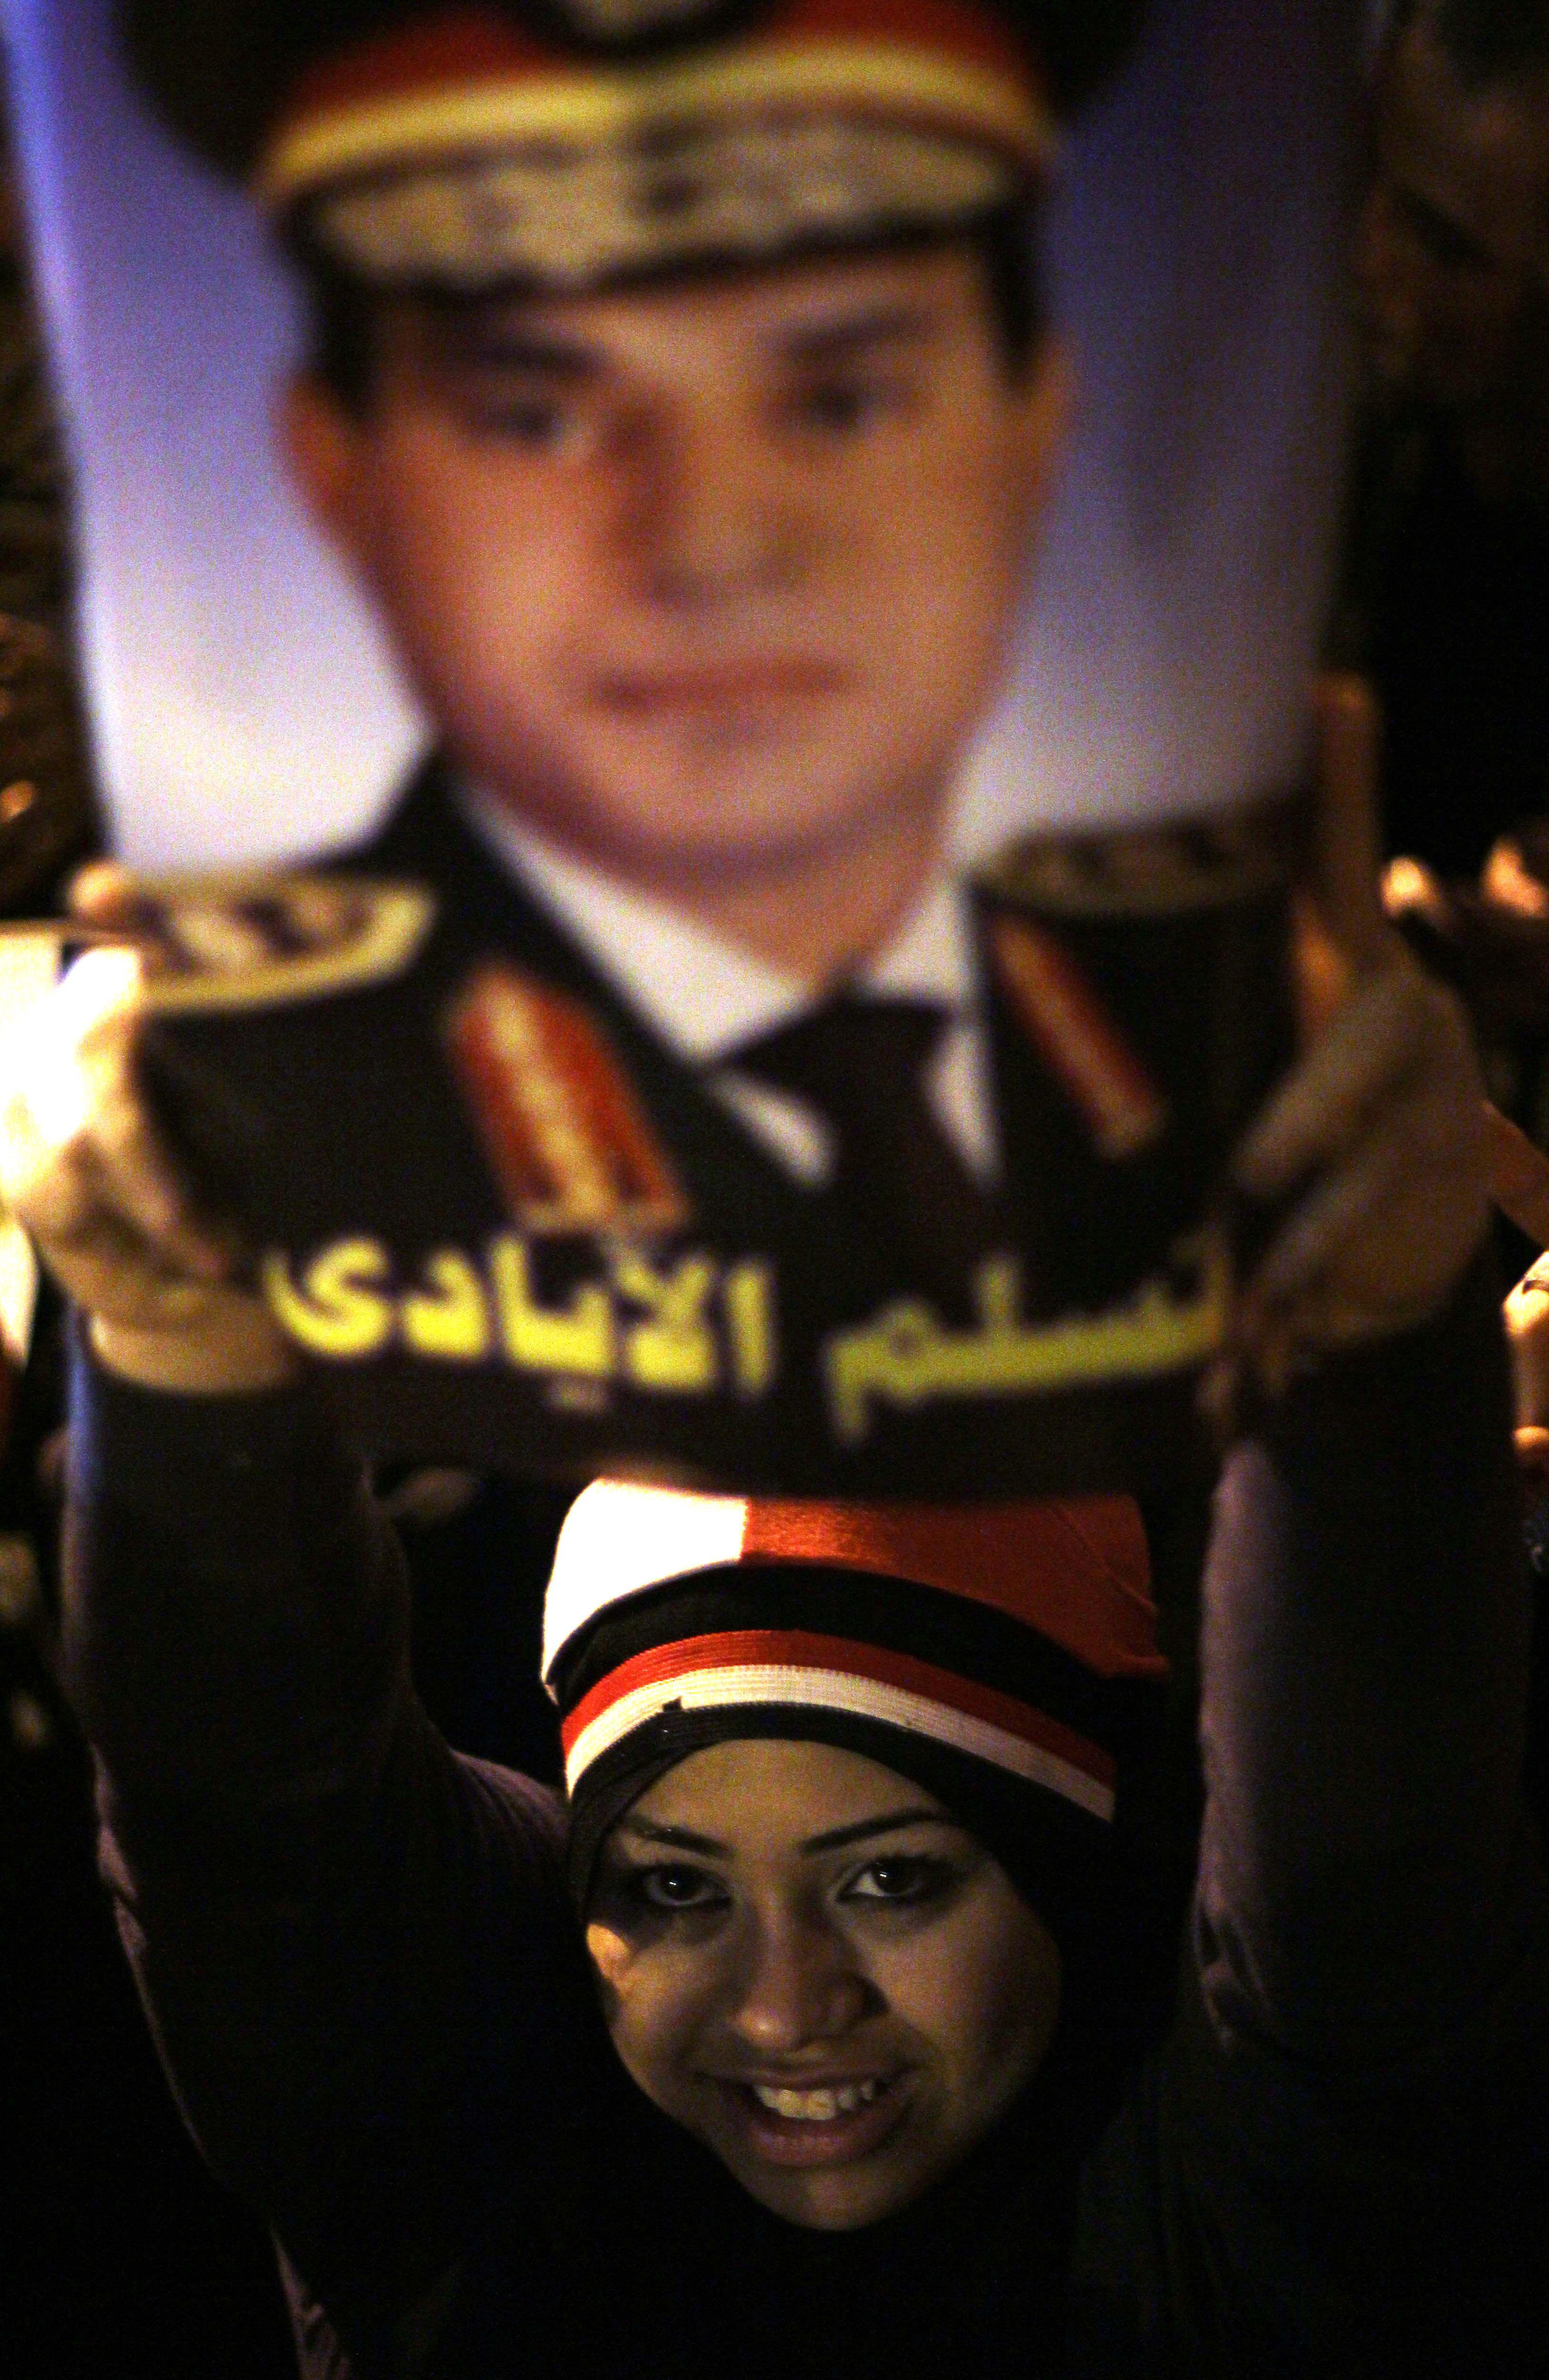 An Egyptian supporter of Egyptian Defence Minister army chief Abdel Fattah al-Sisi holds up his portrait during a gathering in General Abdel Monim Riyad square in downtown Cairo on January 25, 2014, as thousands of Egyptians rallied in the capital's Tahrir Square calling for another military man to become their leader. A spate of deadly bombings put Egyptian police on edge as supporters and opponents of the military-installed government take part in rival rallies for the anniversary of the 2011 Arab Spring uprising.  (AFP PHOTO/AHMED TARANH)